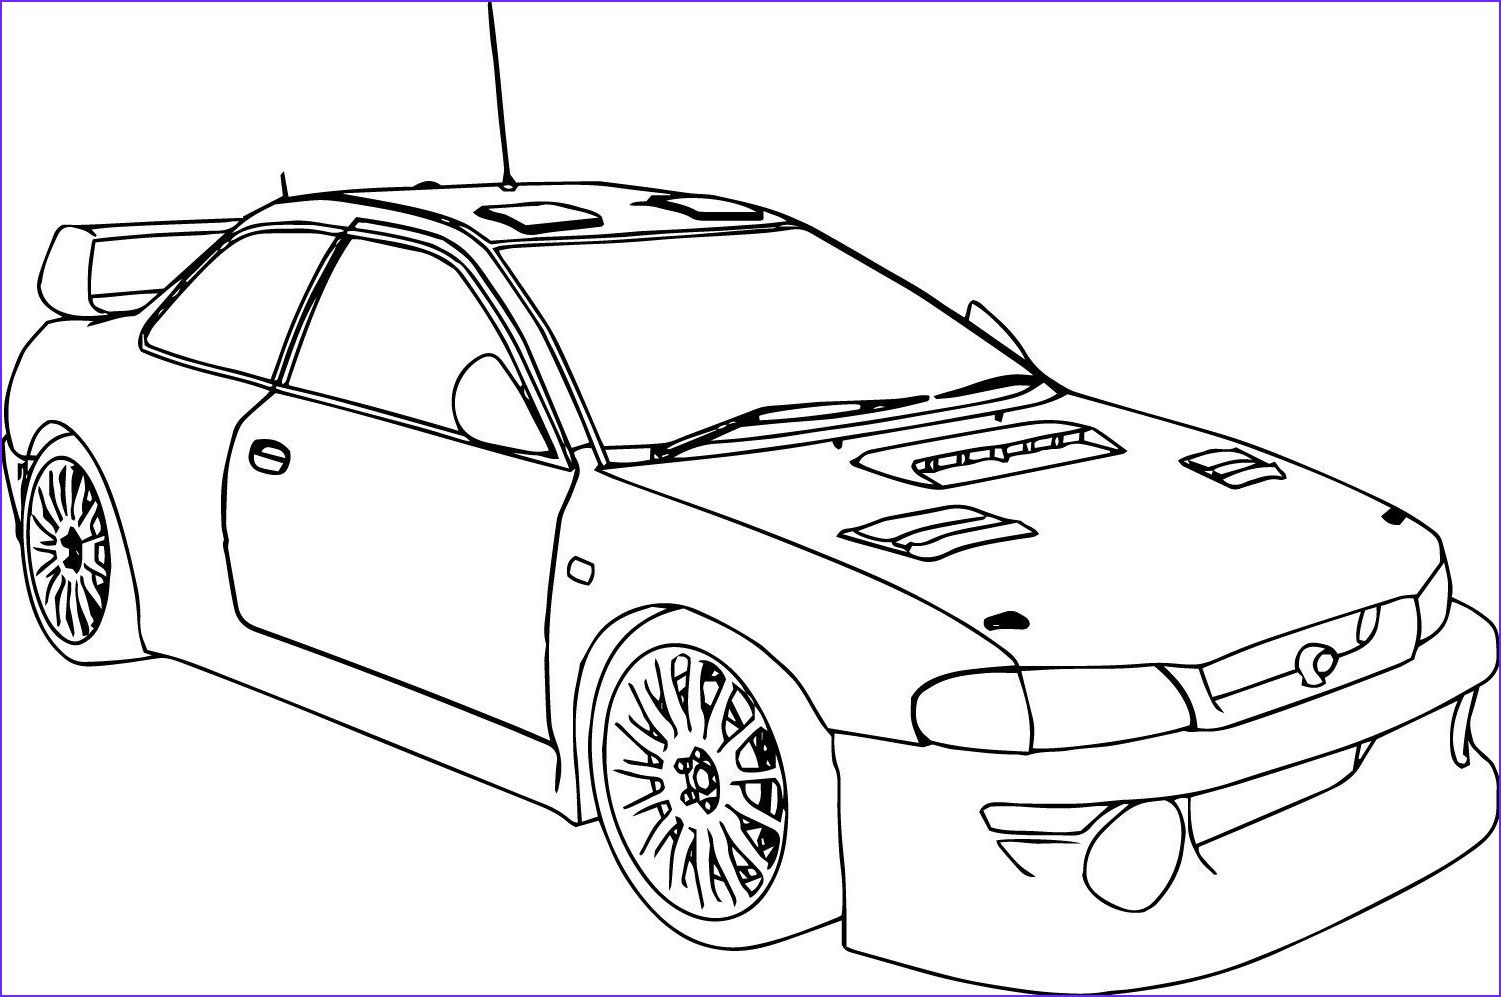 11 Beautiful Car Coloring Images In 2020 Race Car Coloring Pages